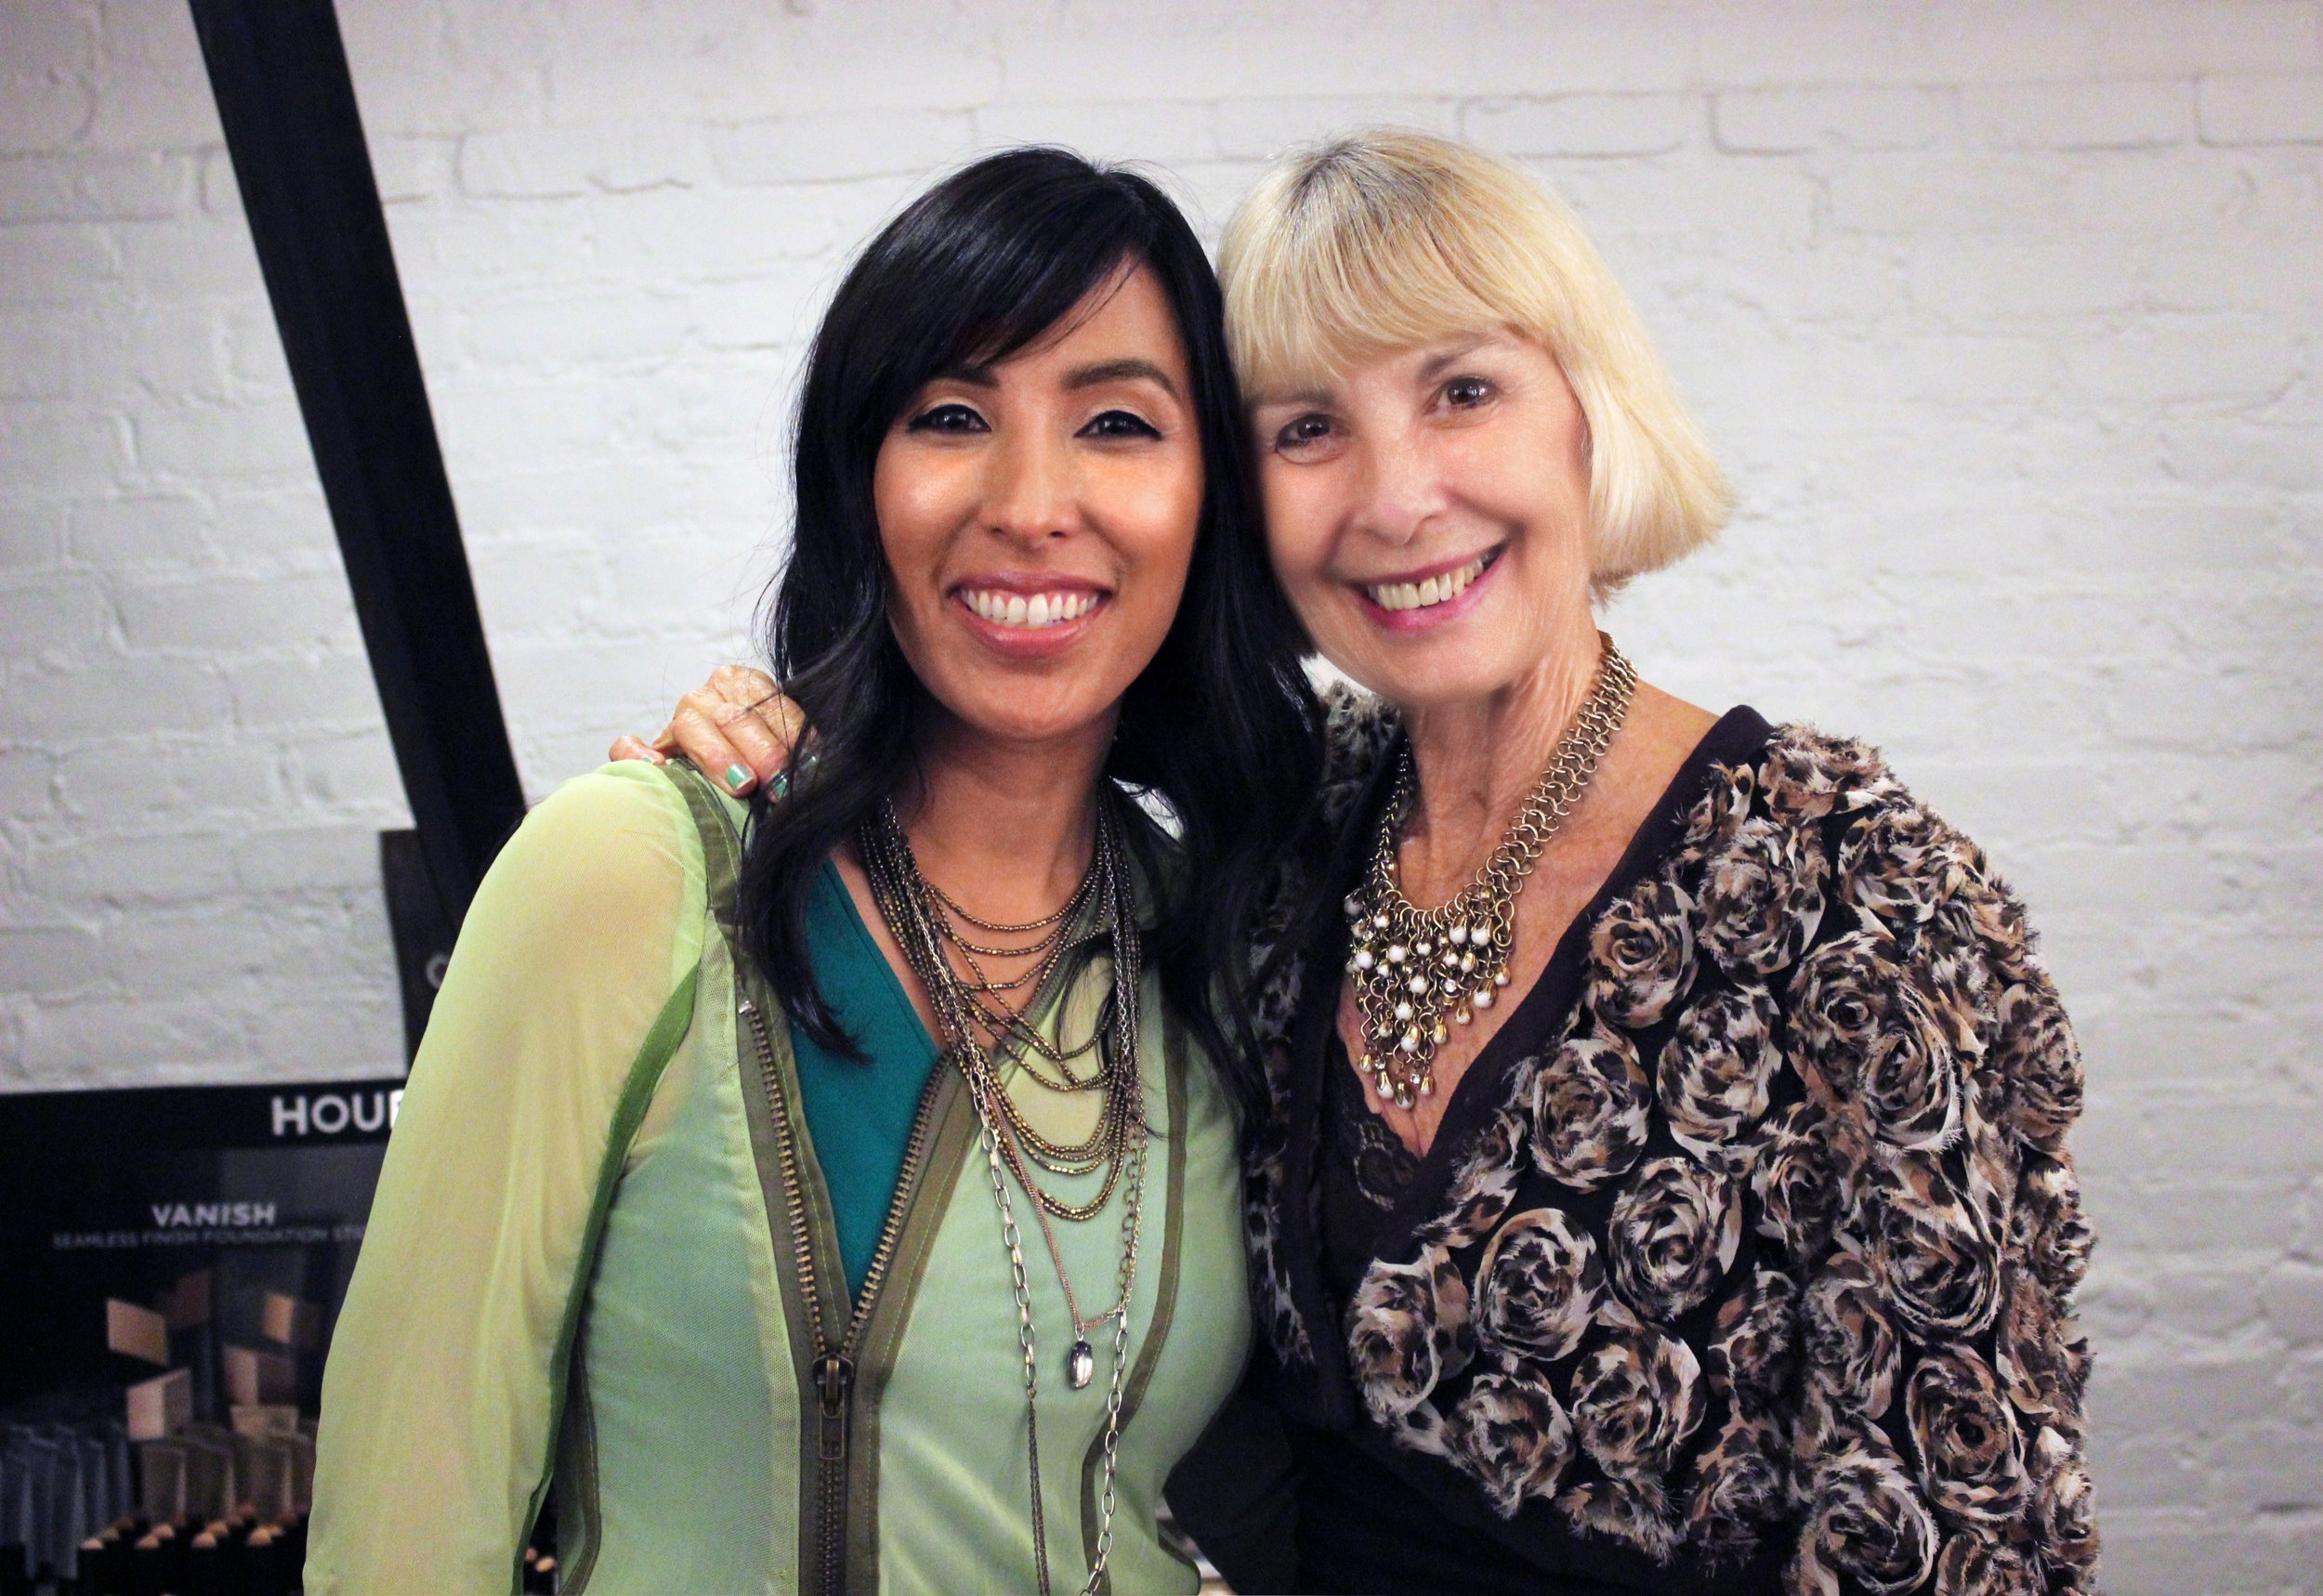 Debuting my jacket with Suzzy at my ColorFest makeup & style class at Hourglass Abbot Kinney